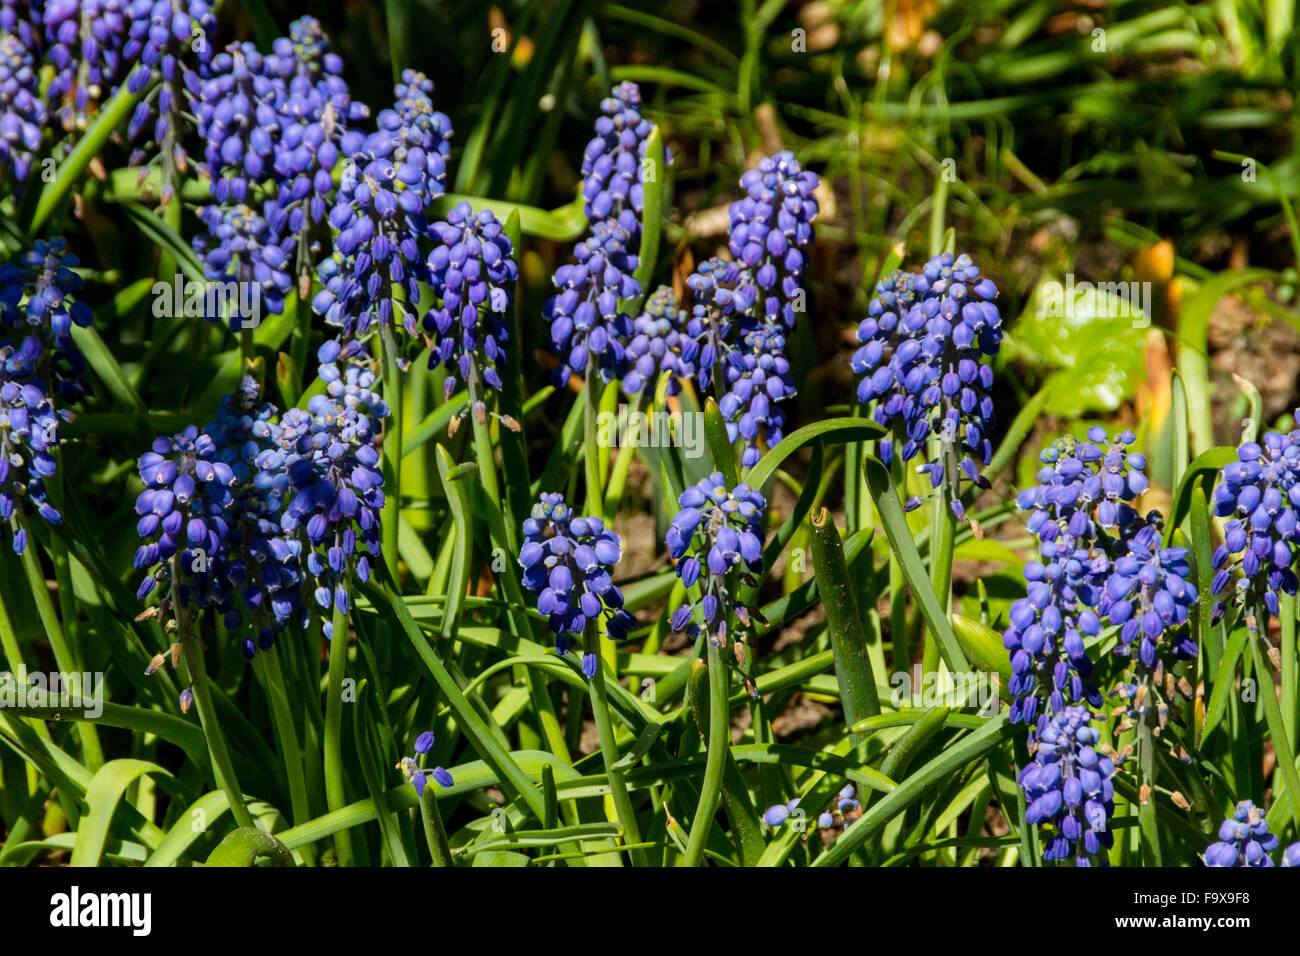 First Blue Springs Flowers Muscari Stock Photo 92161980 Alamy